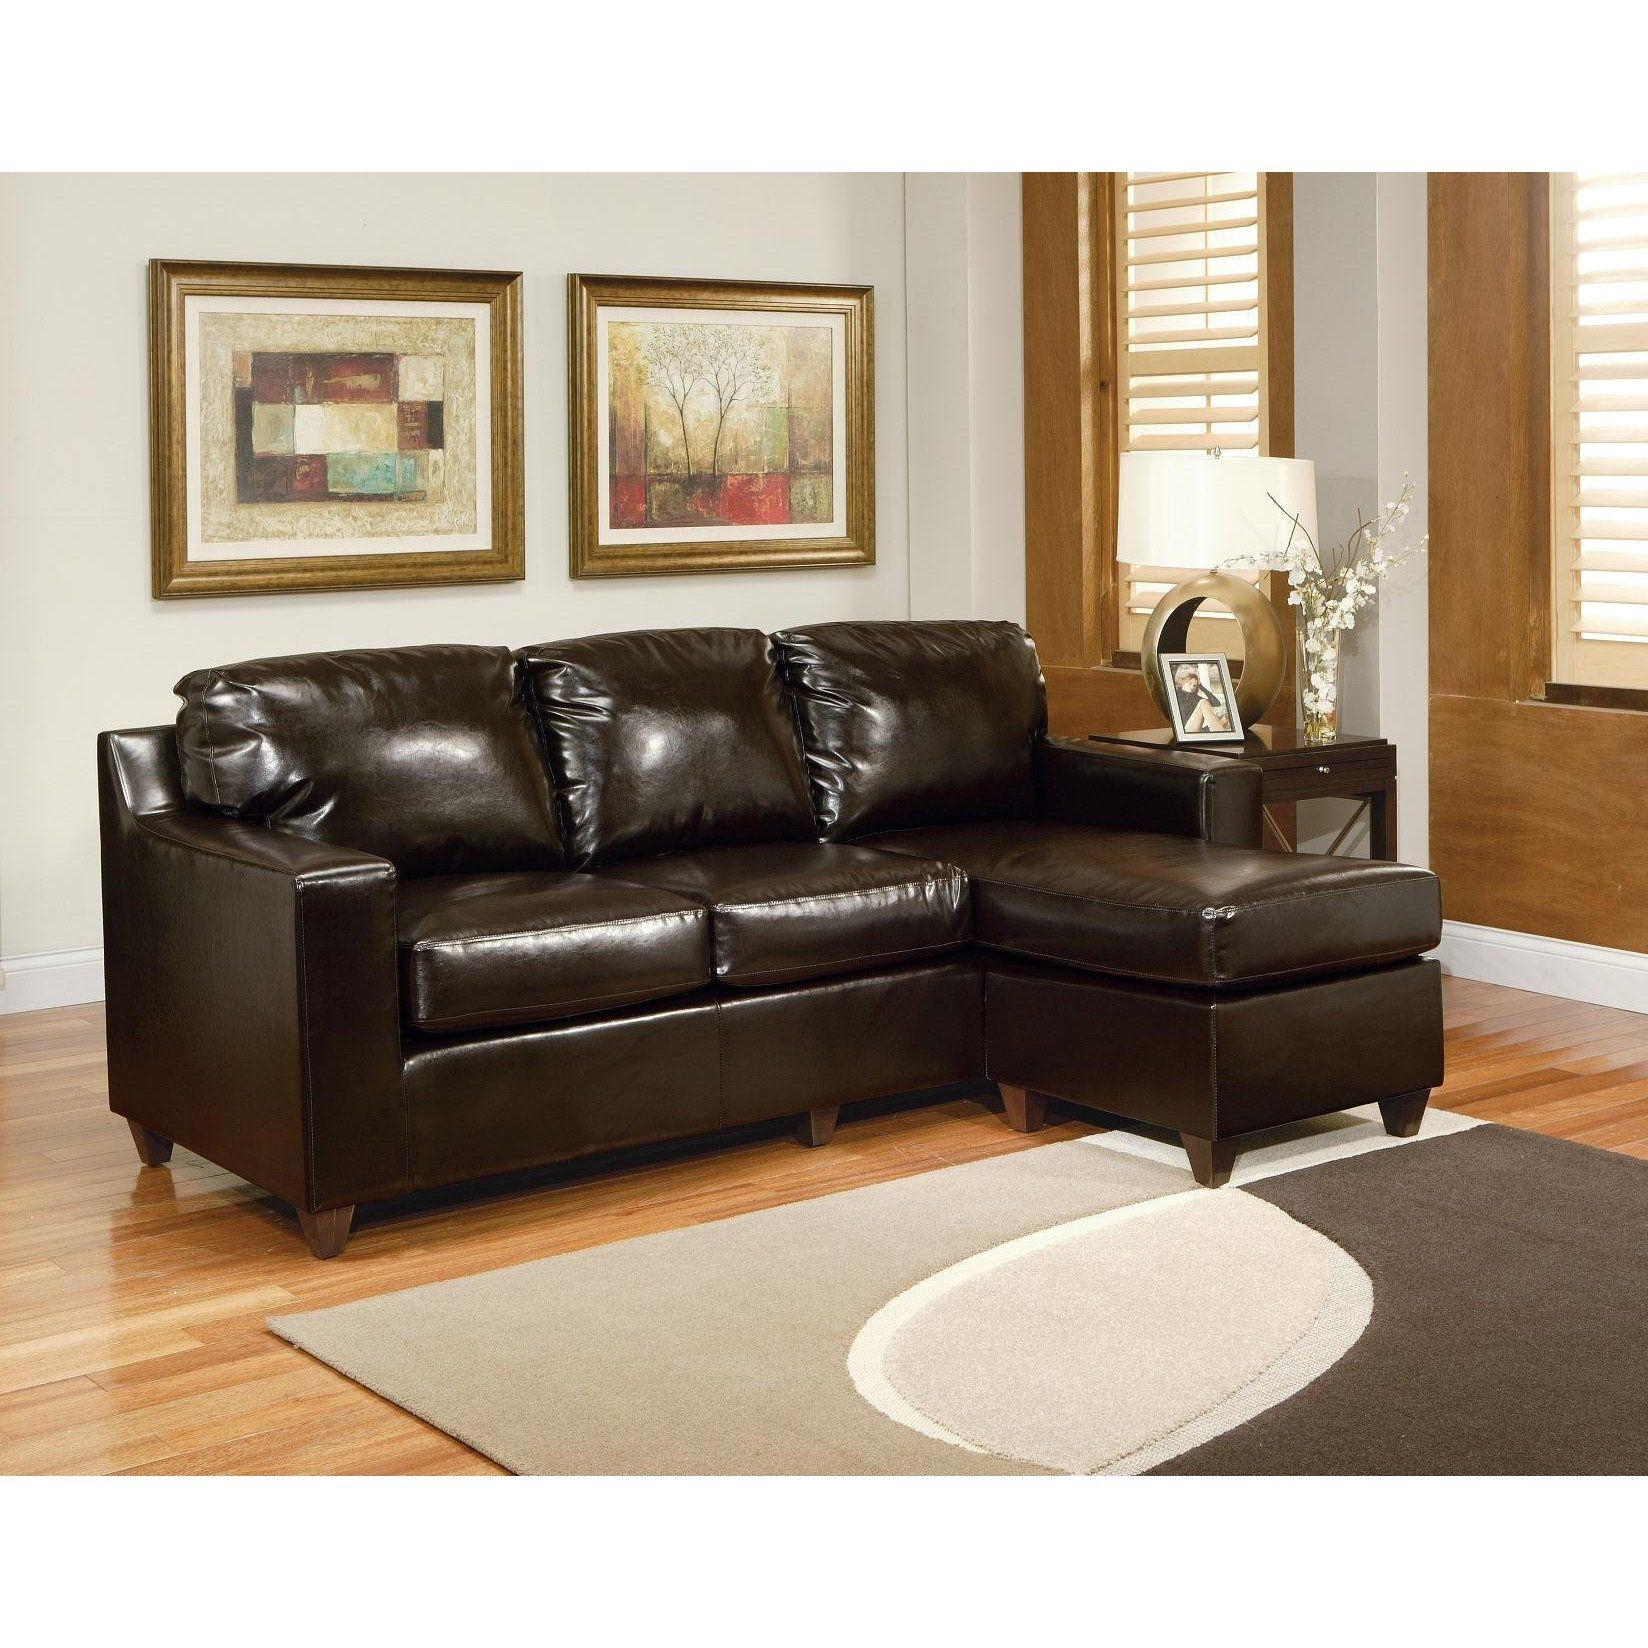 Fabulous Espresso Bycast Leather Multifunction Reversible Sectional Evergreenethics Interior Chair Design Evergreenethicsorg